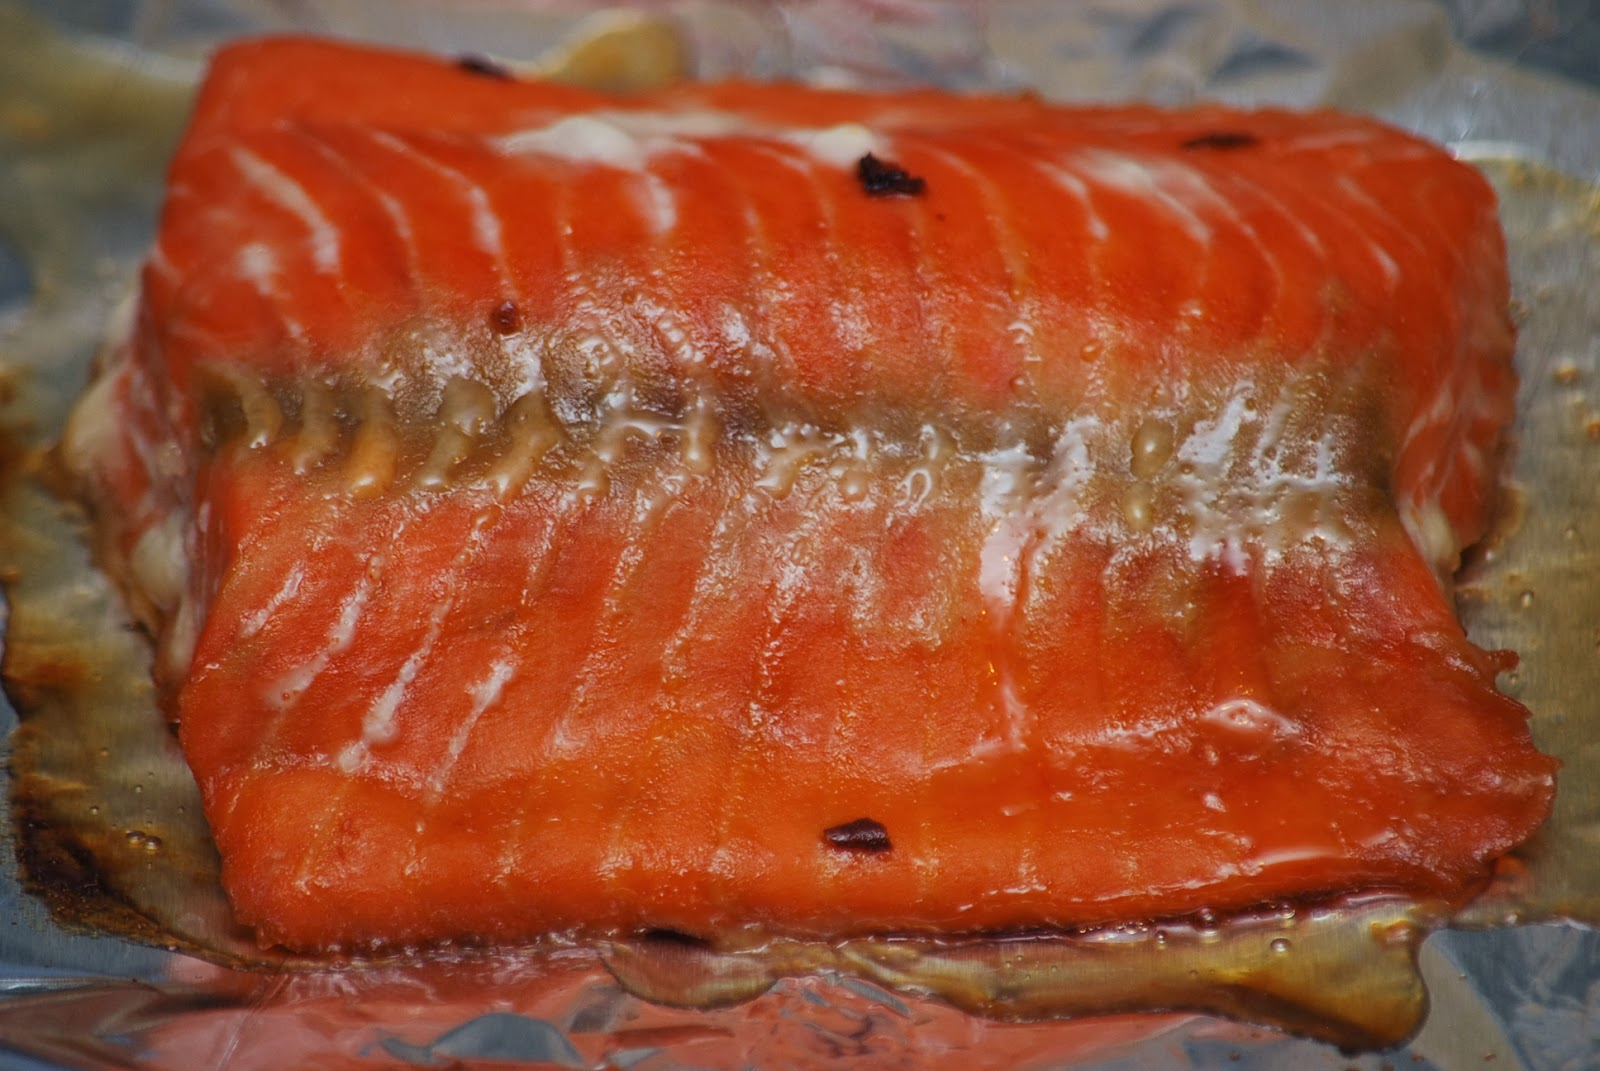 My story in recipes: Maple Glazed Salmon